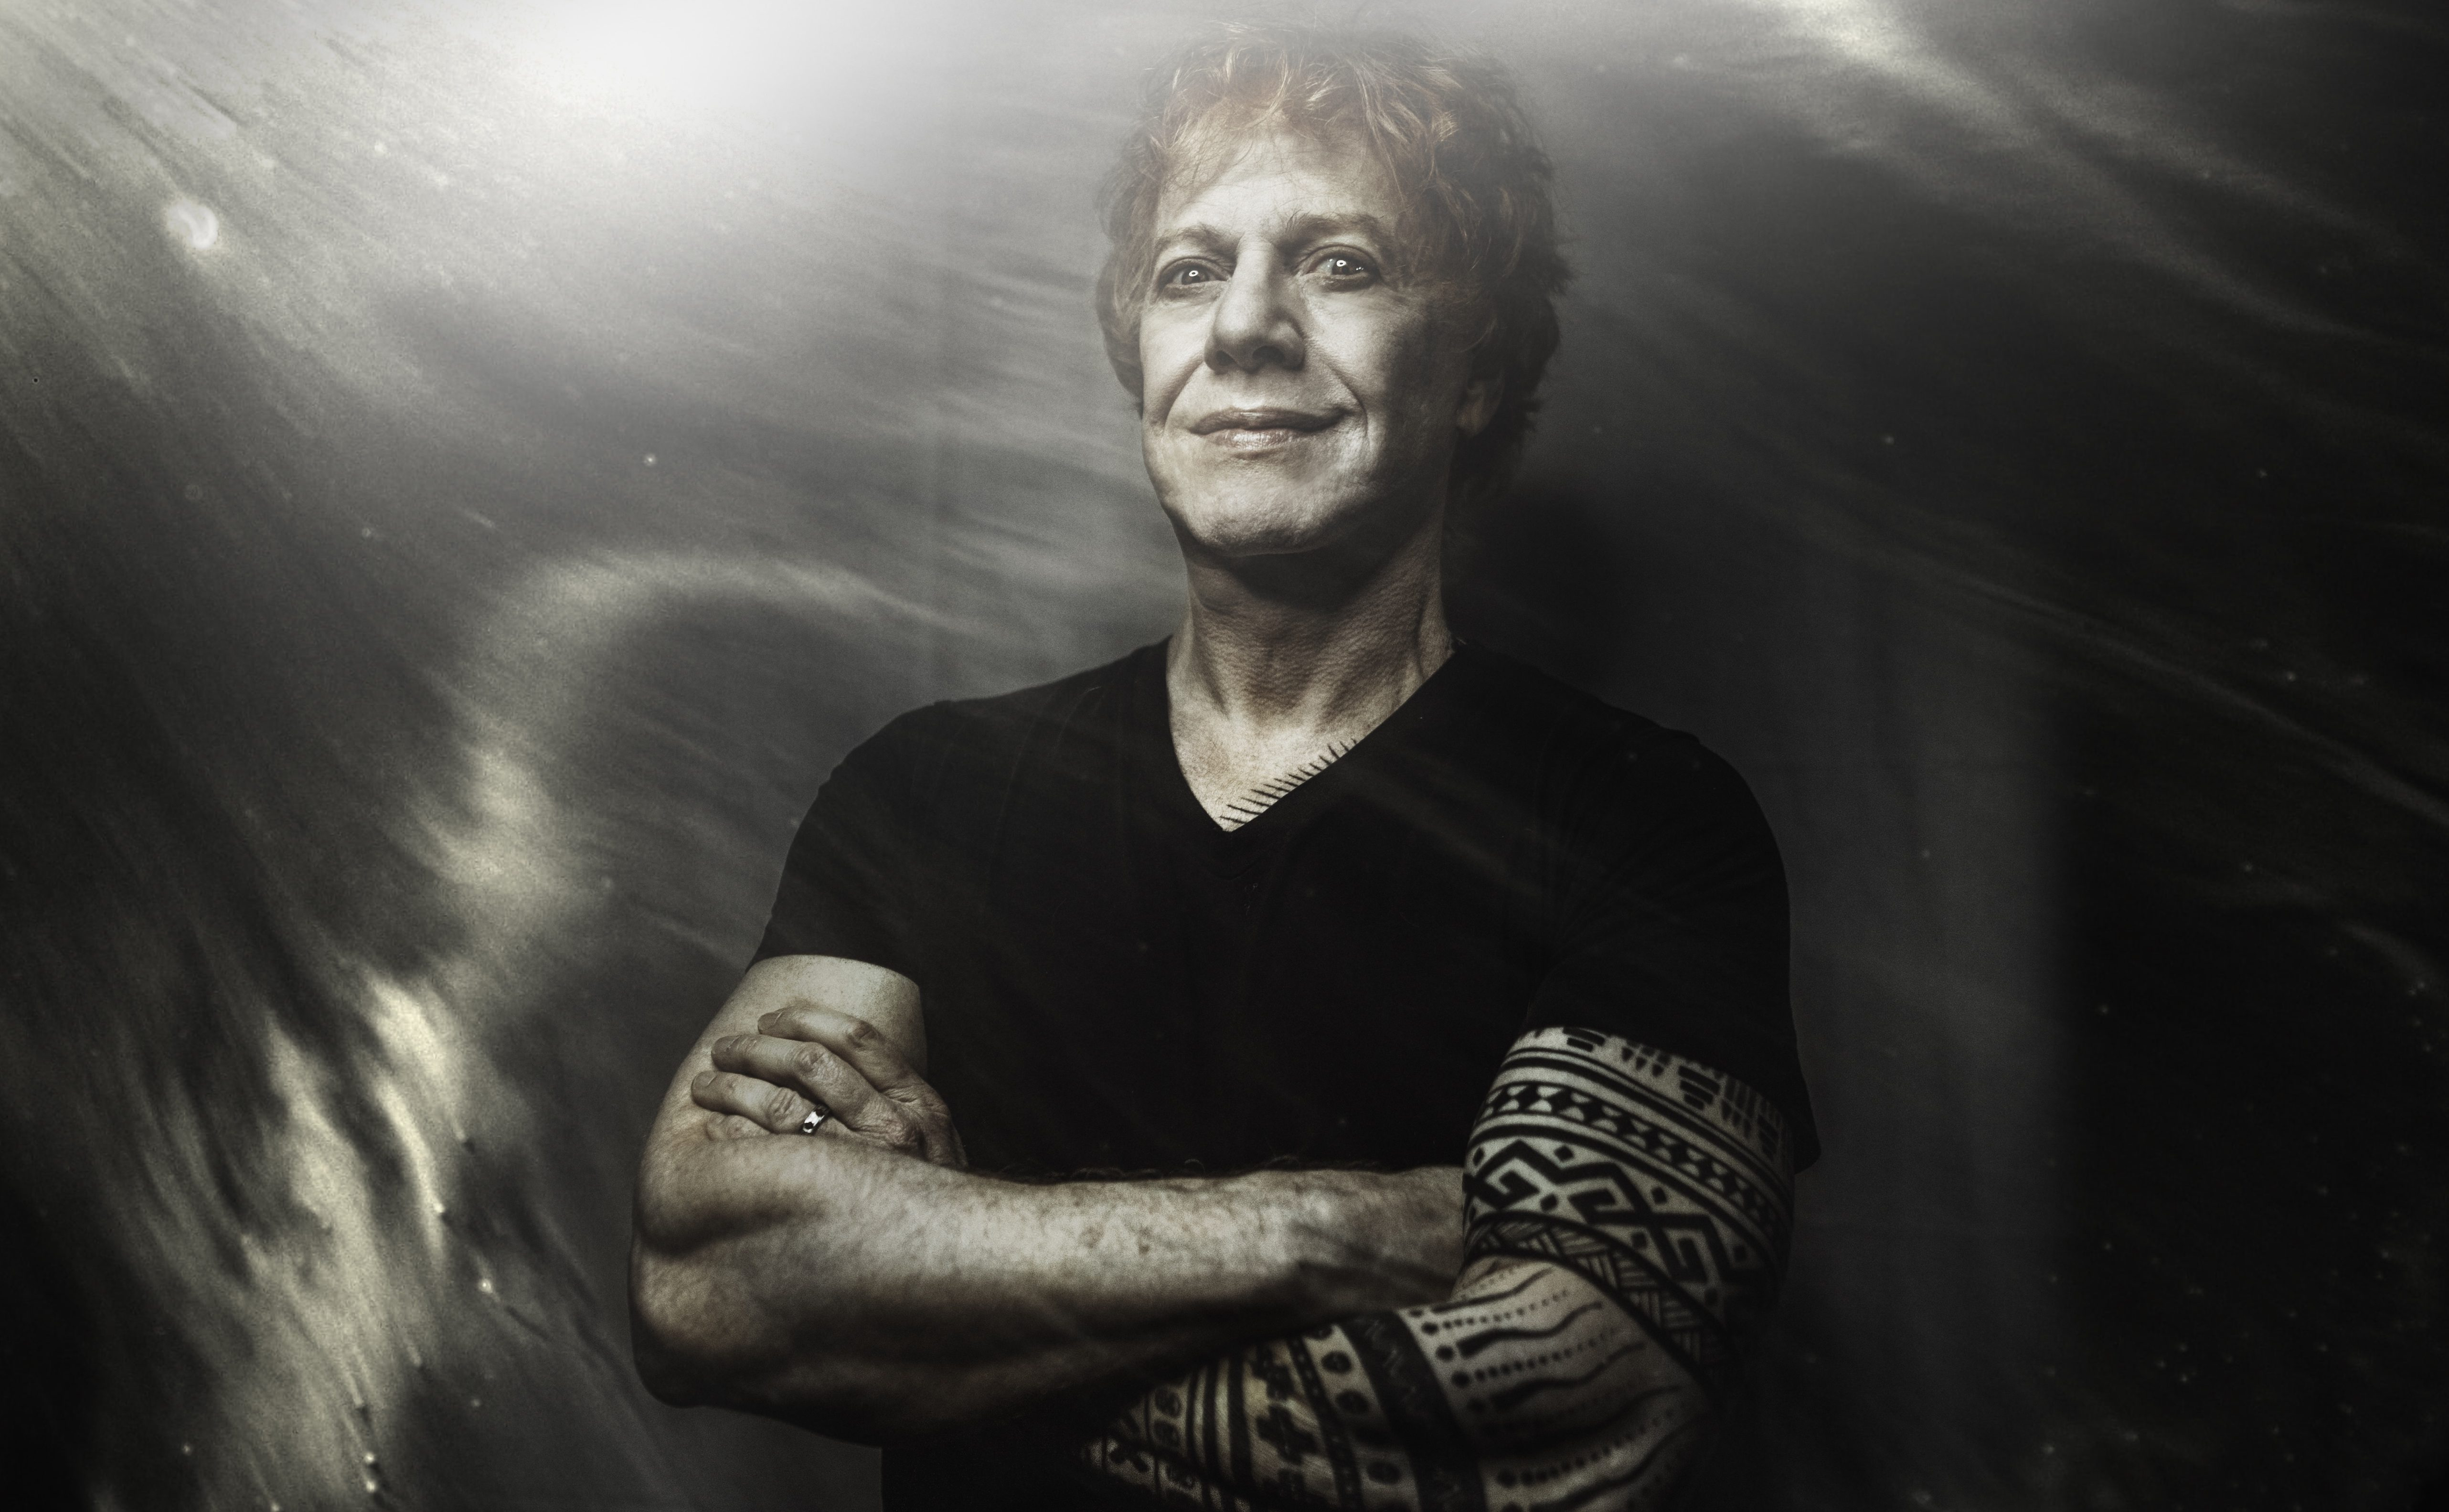 danny-elfman-talks-about-making-a-'big-mess,'-and-returning-to-rock-a-quarter-century-after-oingo-boingo-split